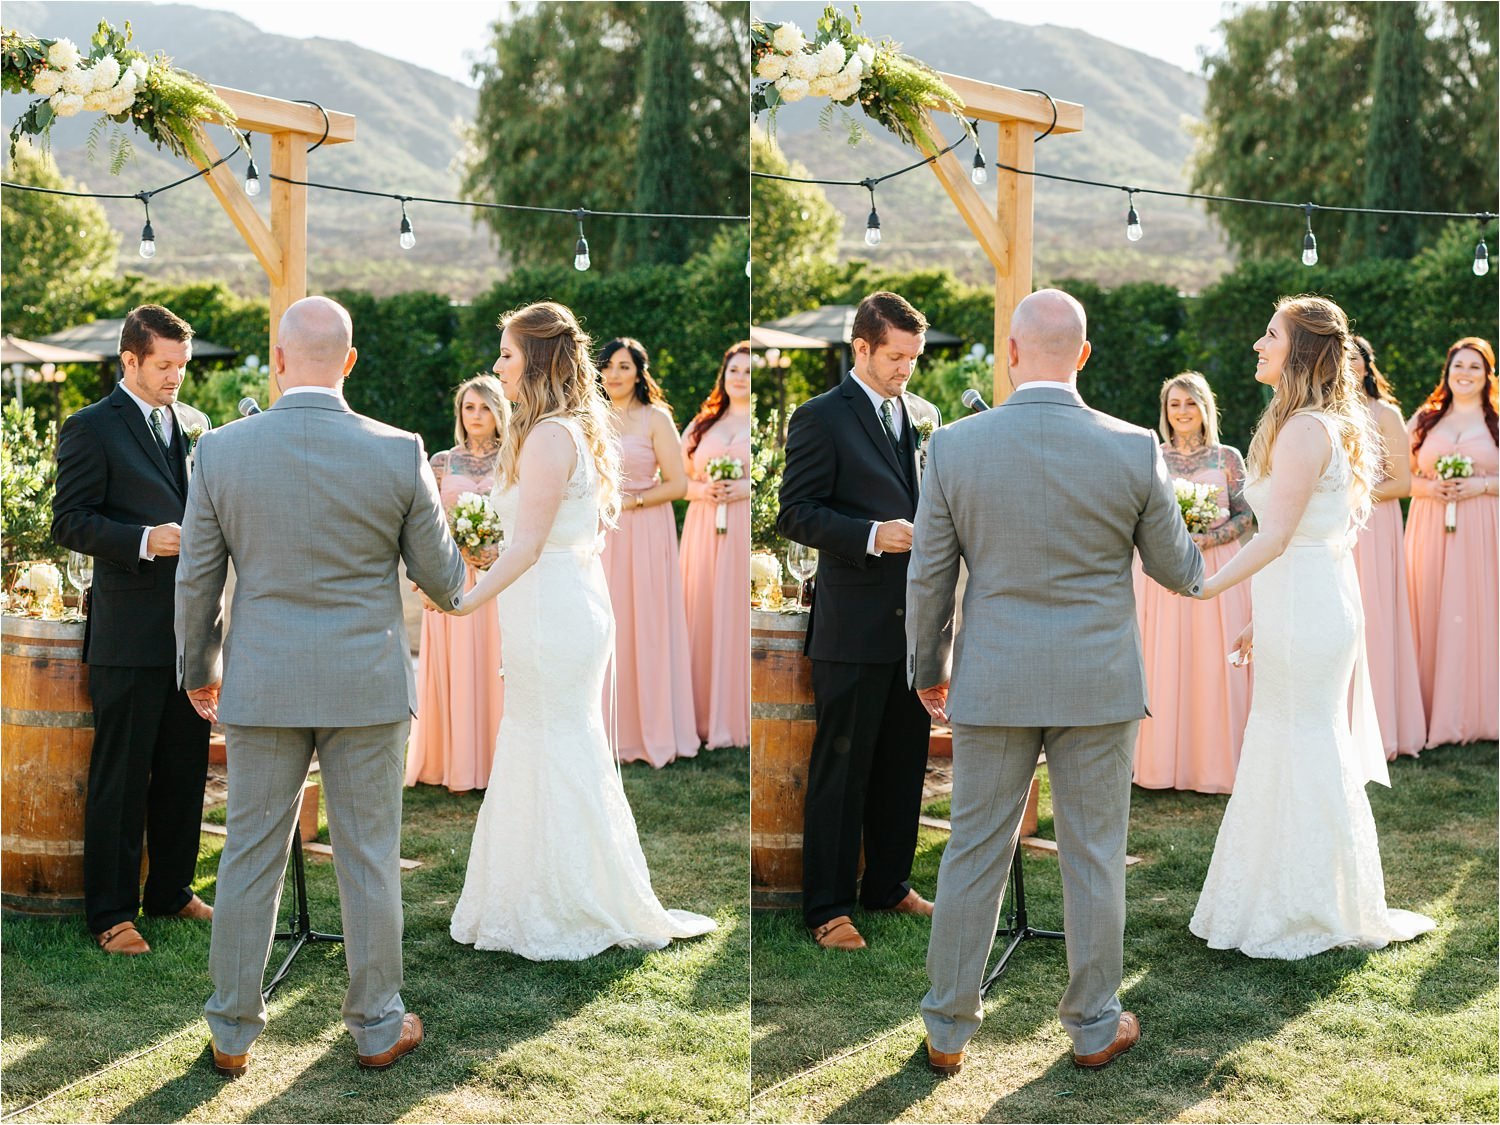 Elegant Wedding Ceremony in Southern California - https://brittneyhannonphotography.com